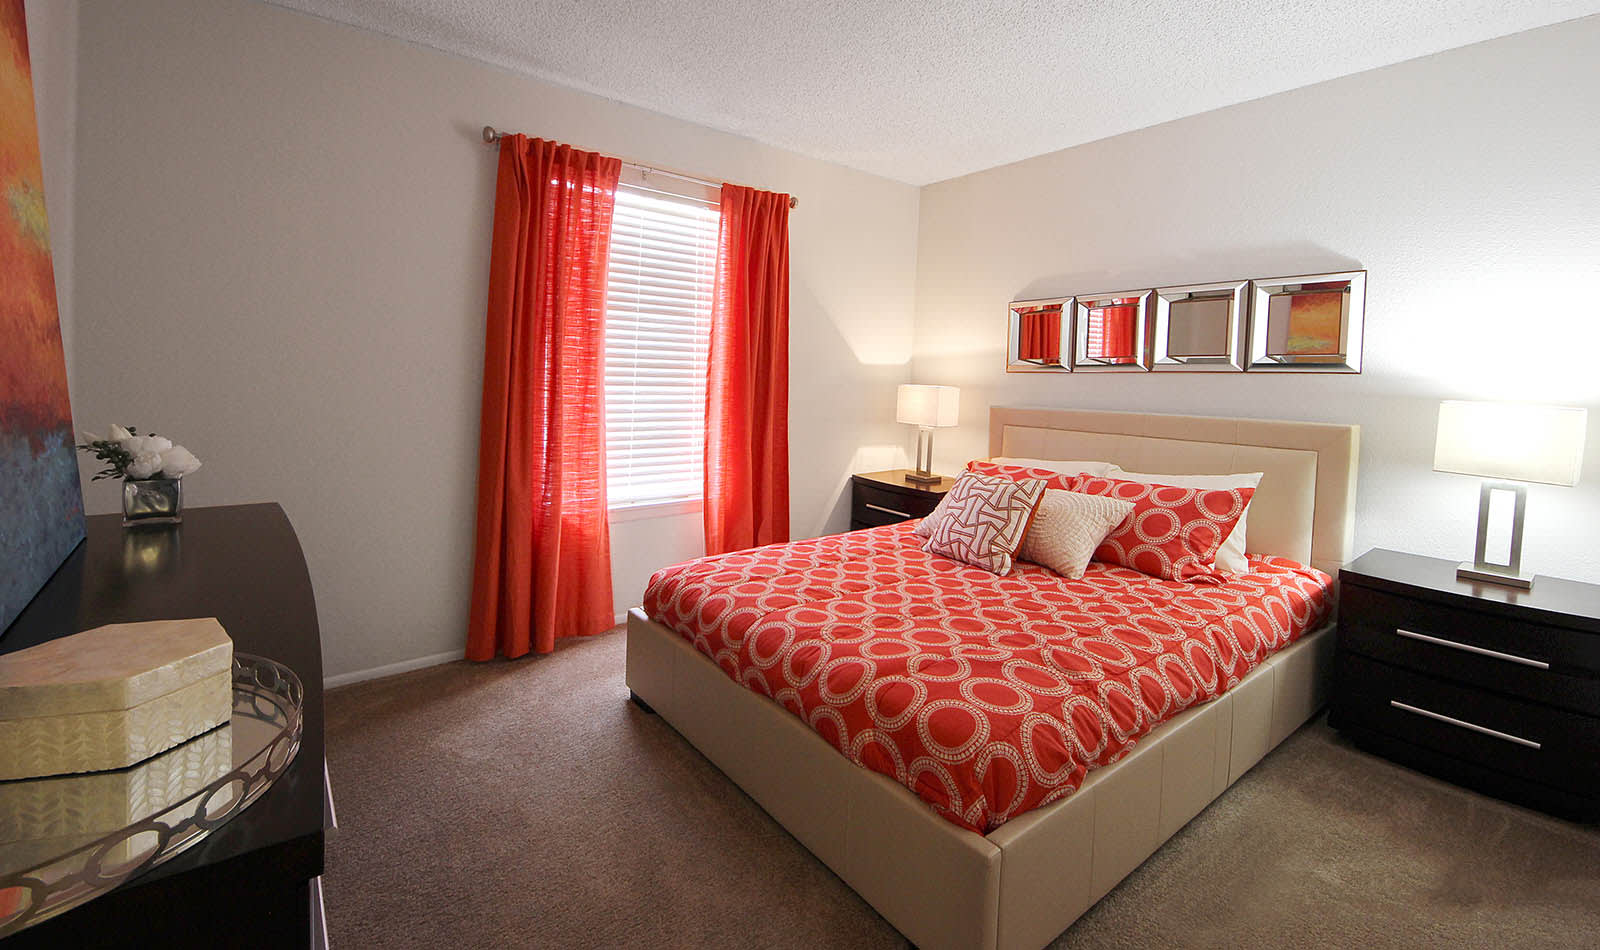 Bedroom With Natural Light at Altamonte at Spring Valley in Altamonte Springs, FL